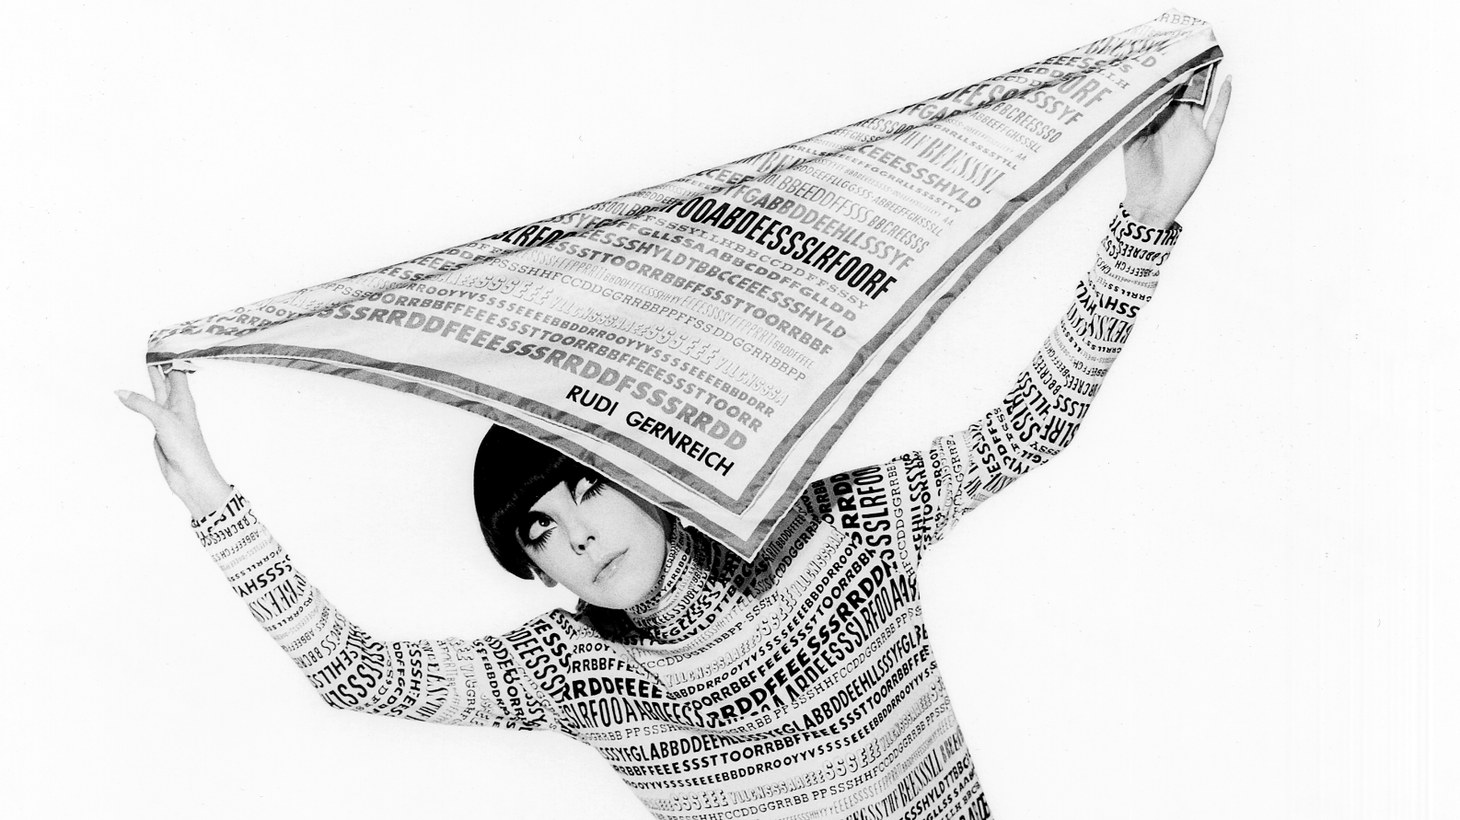 Peggy Moffitt modeling a typeface ensemble designed by Rudi Gernreich, Fall 1968 collection.